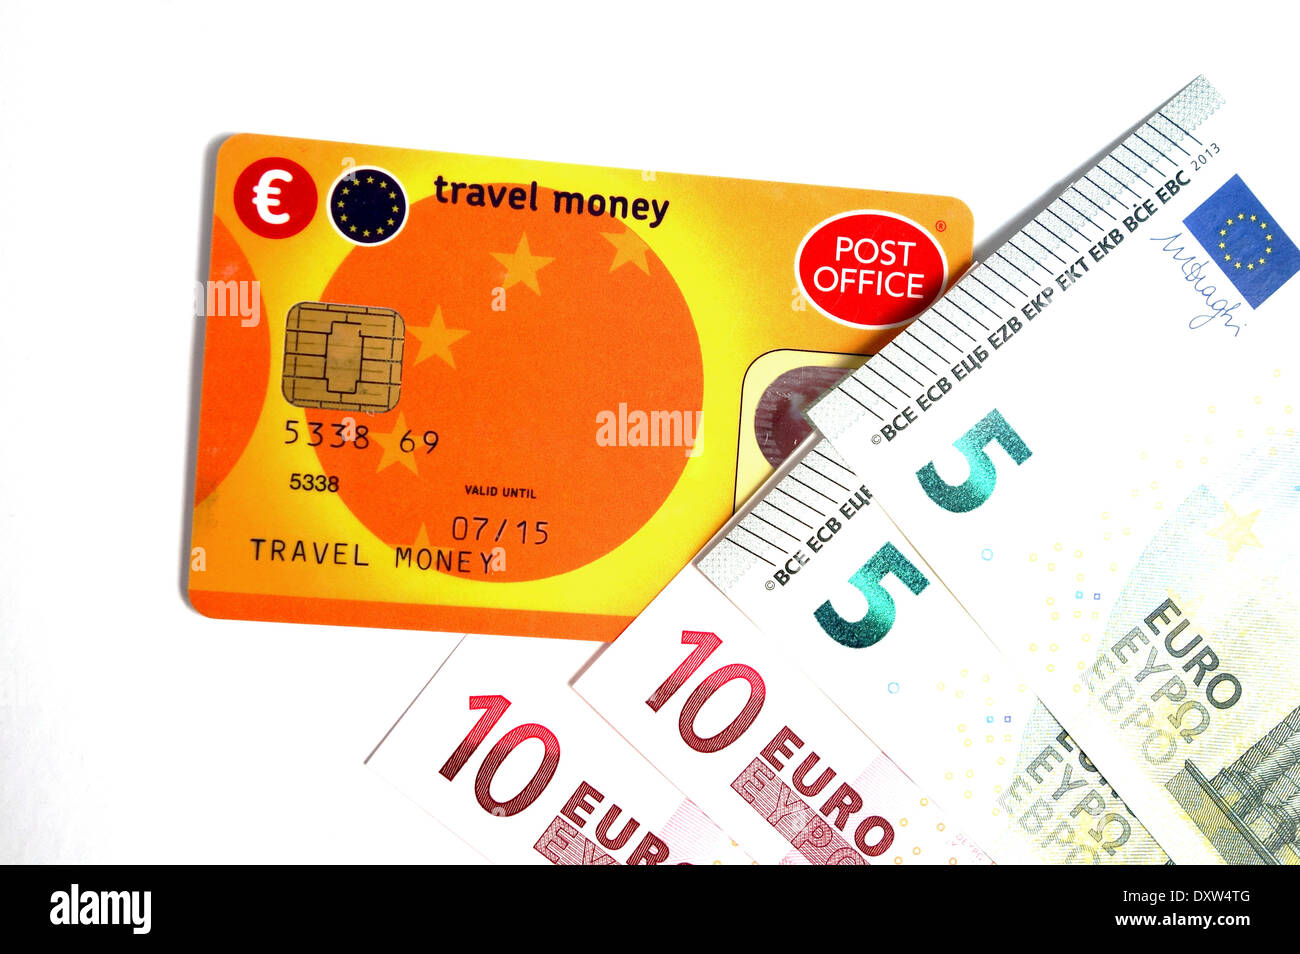 a Post Office travel money card and euros - Stock Image